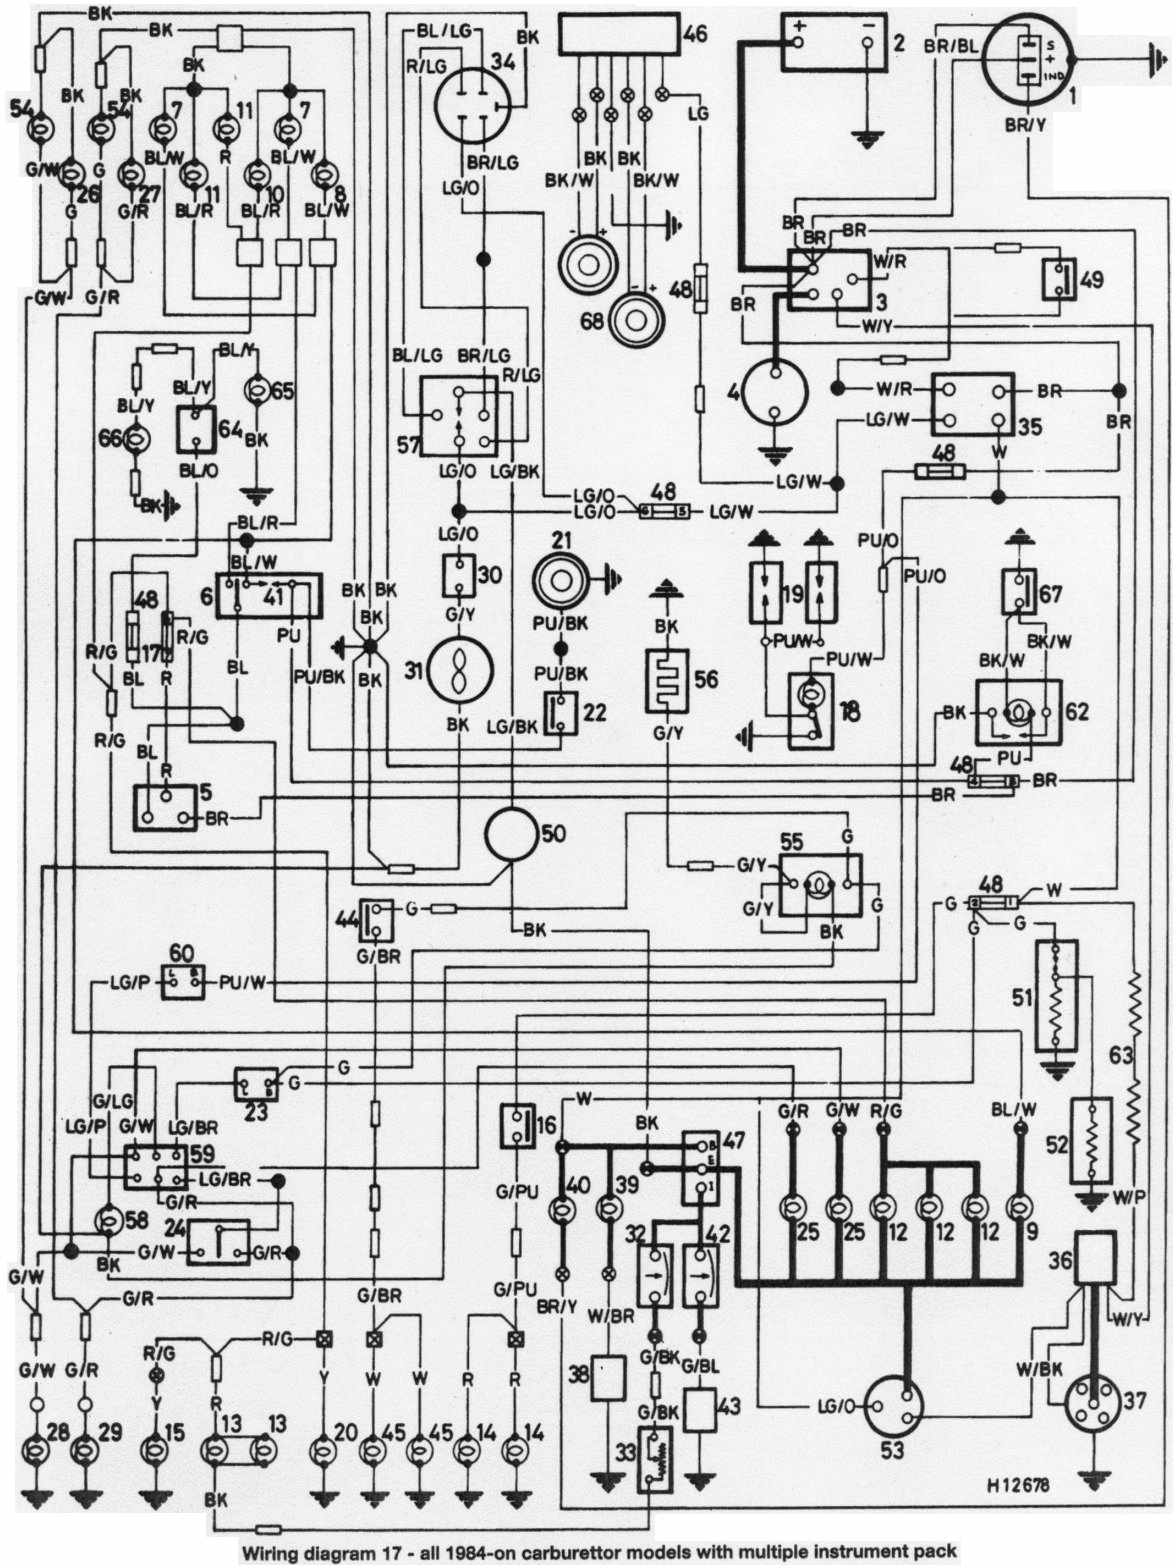 wiring diagram of 1984 onwards all mini series with multiple instrument pack?t\=1508499130 bmw mini wiring diagram gem e2 wiring diagrams \u2022 wiring diagrams 2007 mini cooper wiring diagrams at crackthecode.co